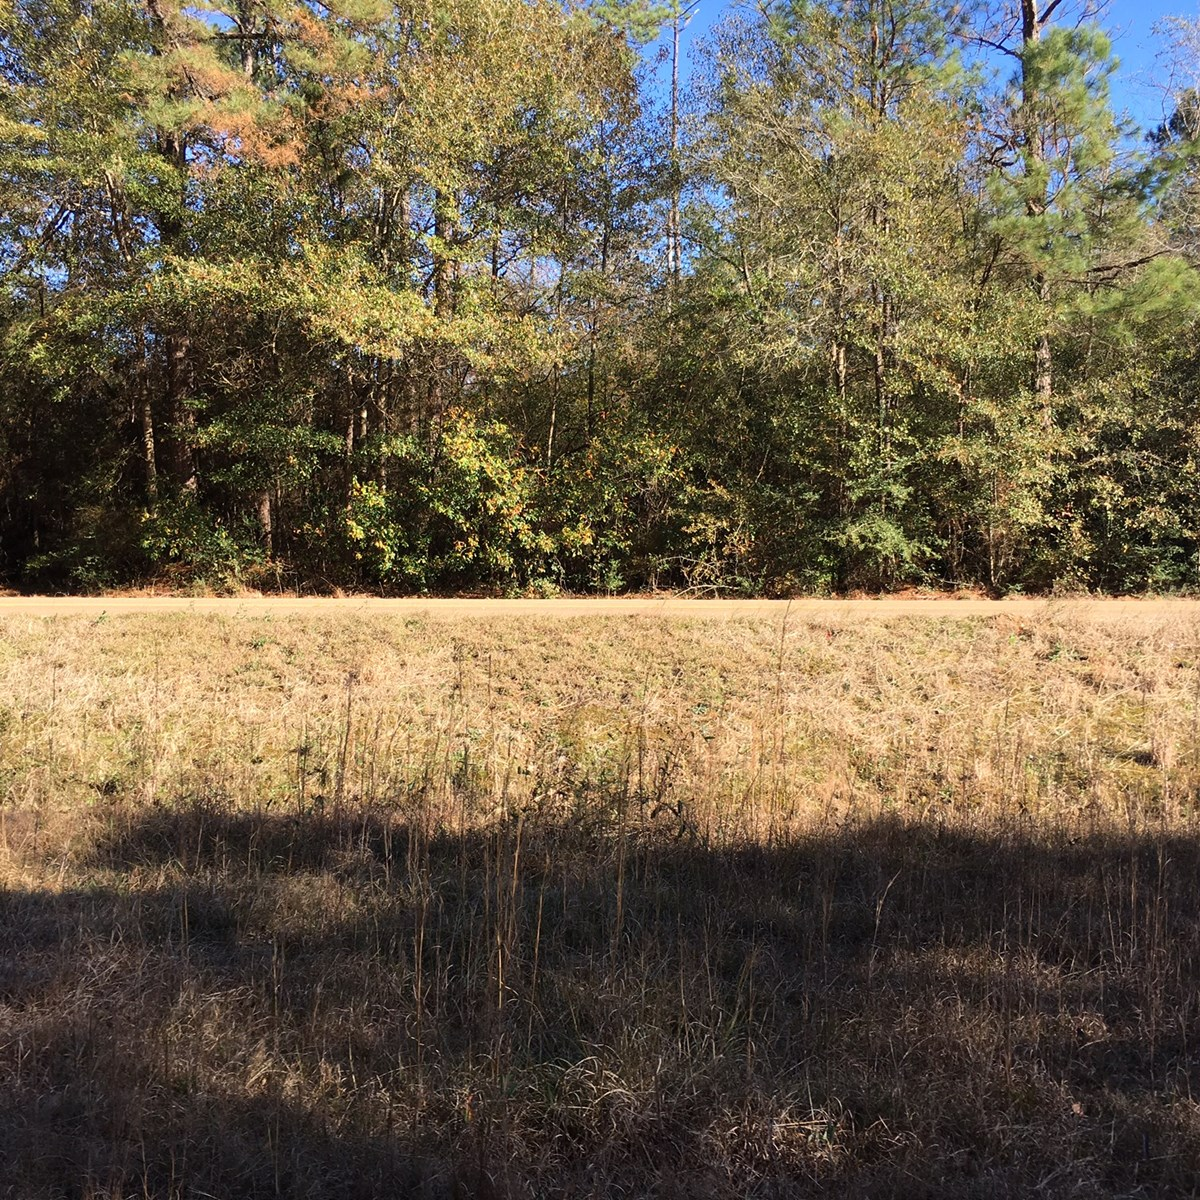 SPACIOUS 26 ACRE HOME SITE OR WEEKEND GETAWAY IN ST. TAMMANY